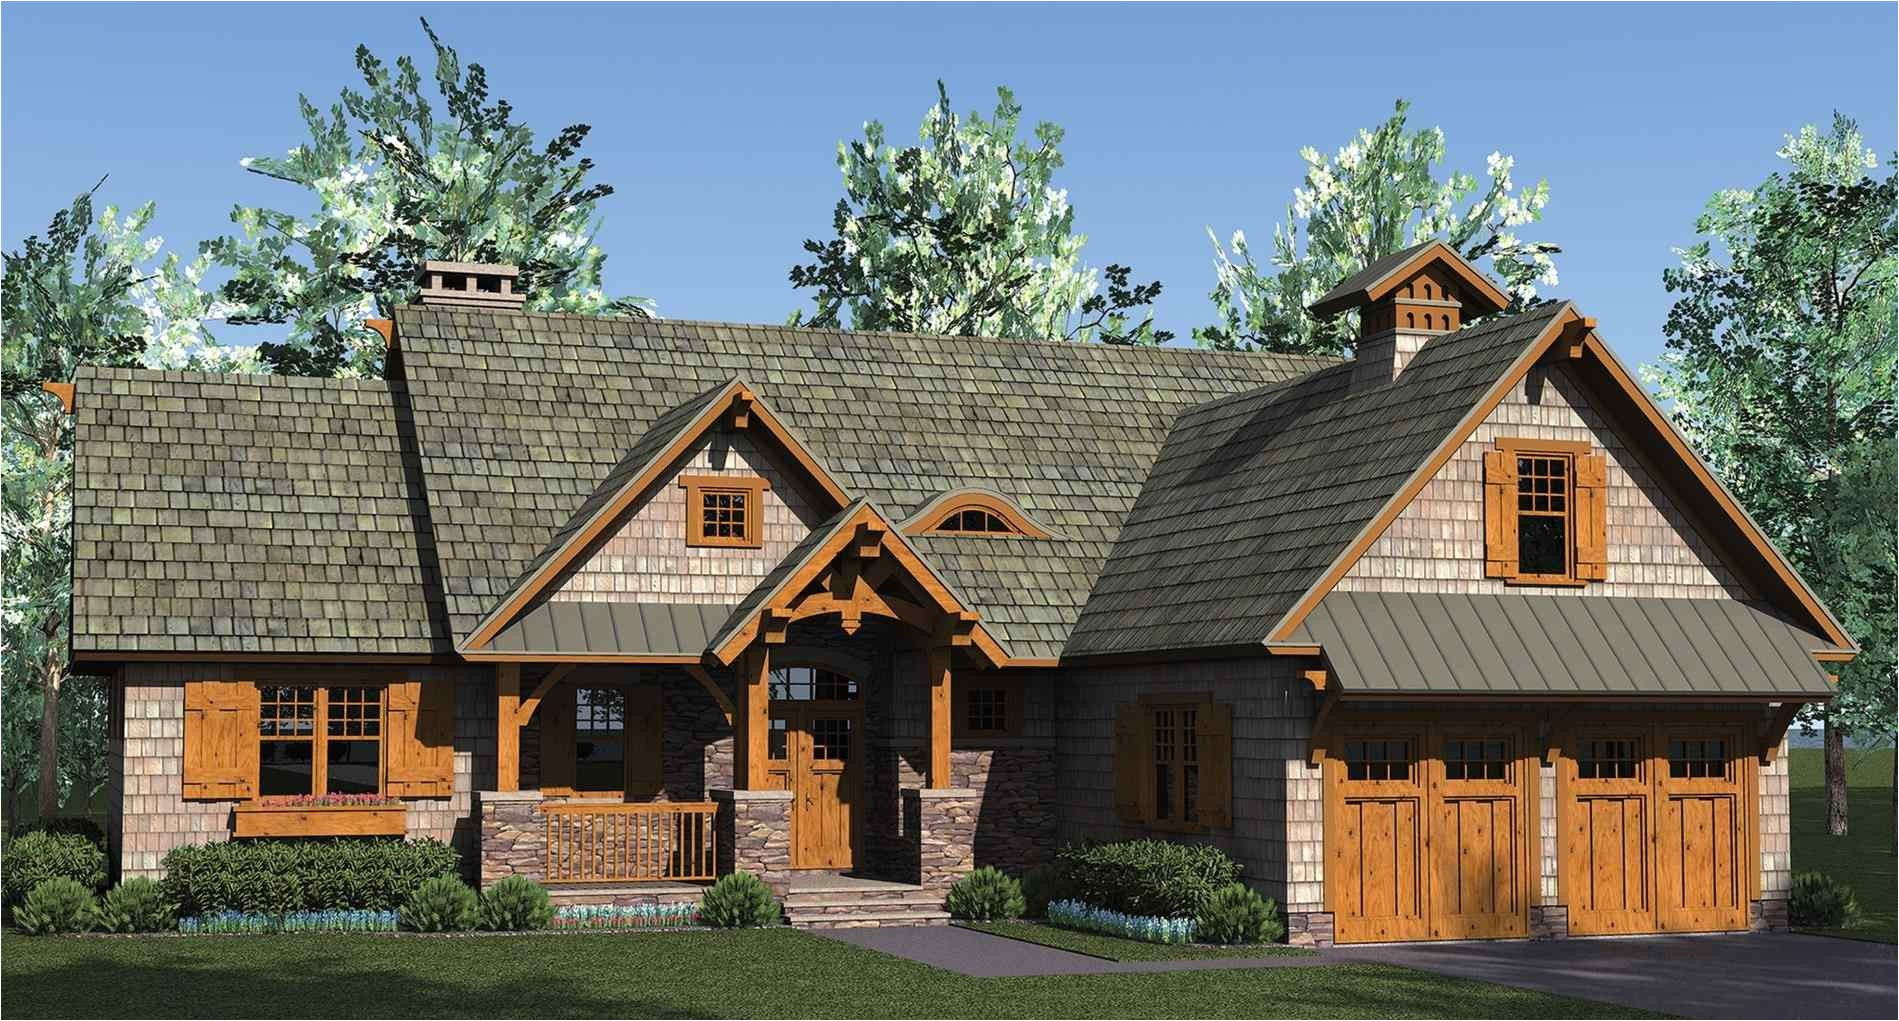 plans most popular home classic apartments apartments simple rustic house plans log home designs timber framed homes with pic log simple rustic jpg